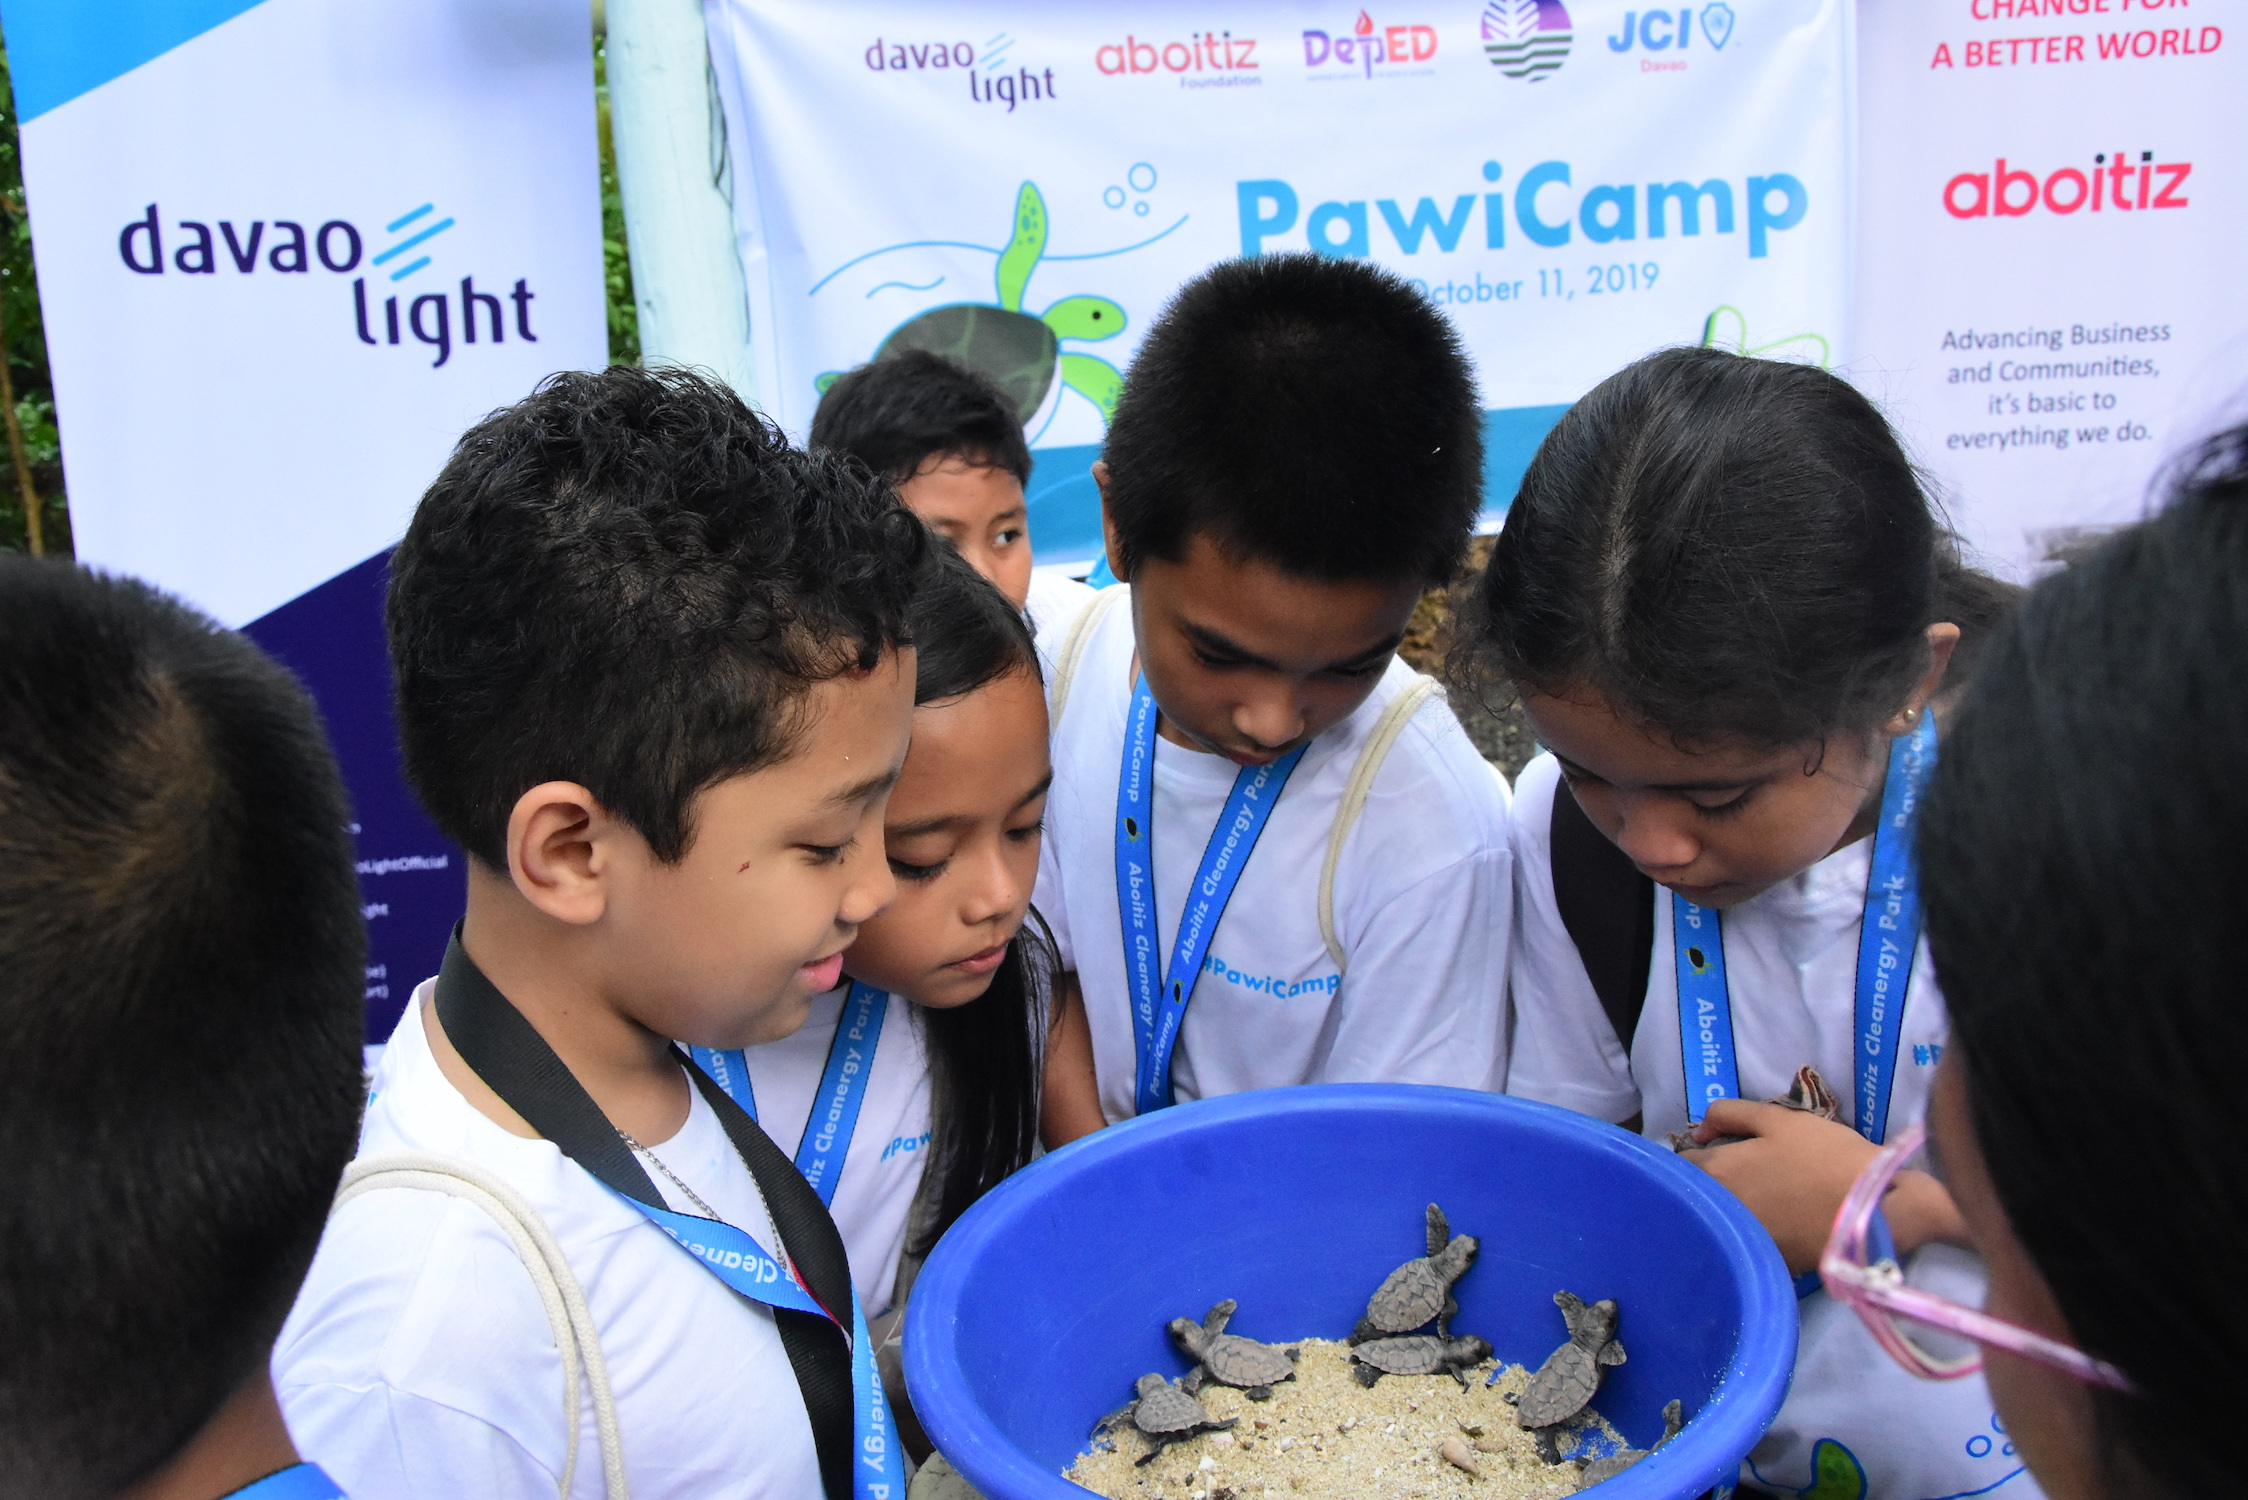 Aboitiz PawiCAMP student-campers witness the release of pawikan hatchlings into the ocean -- a critical milestone and part of the area's rich biodiversity.